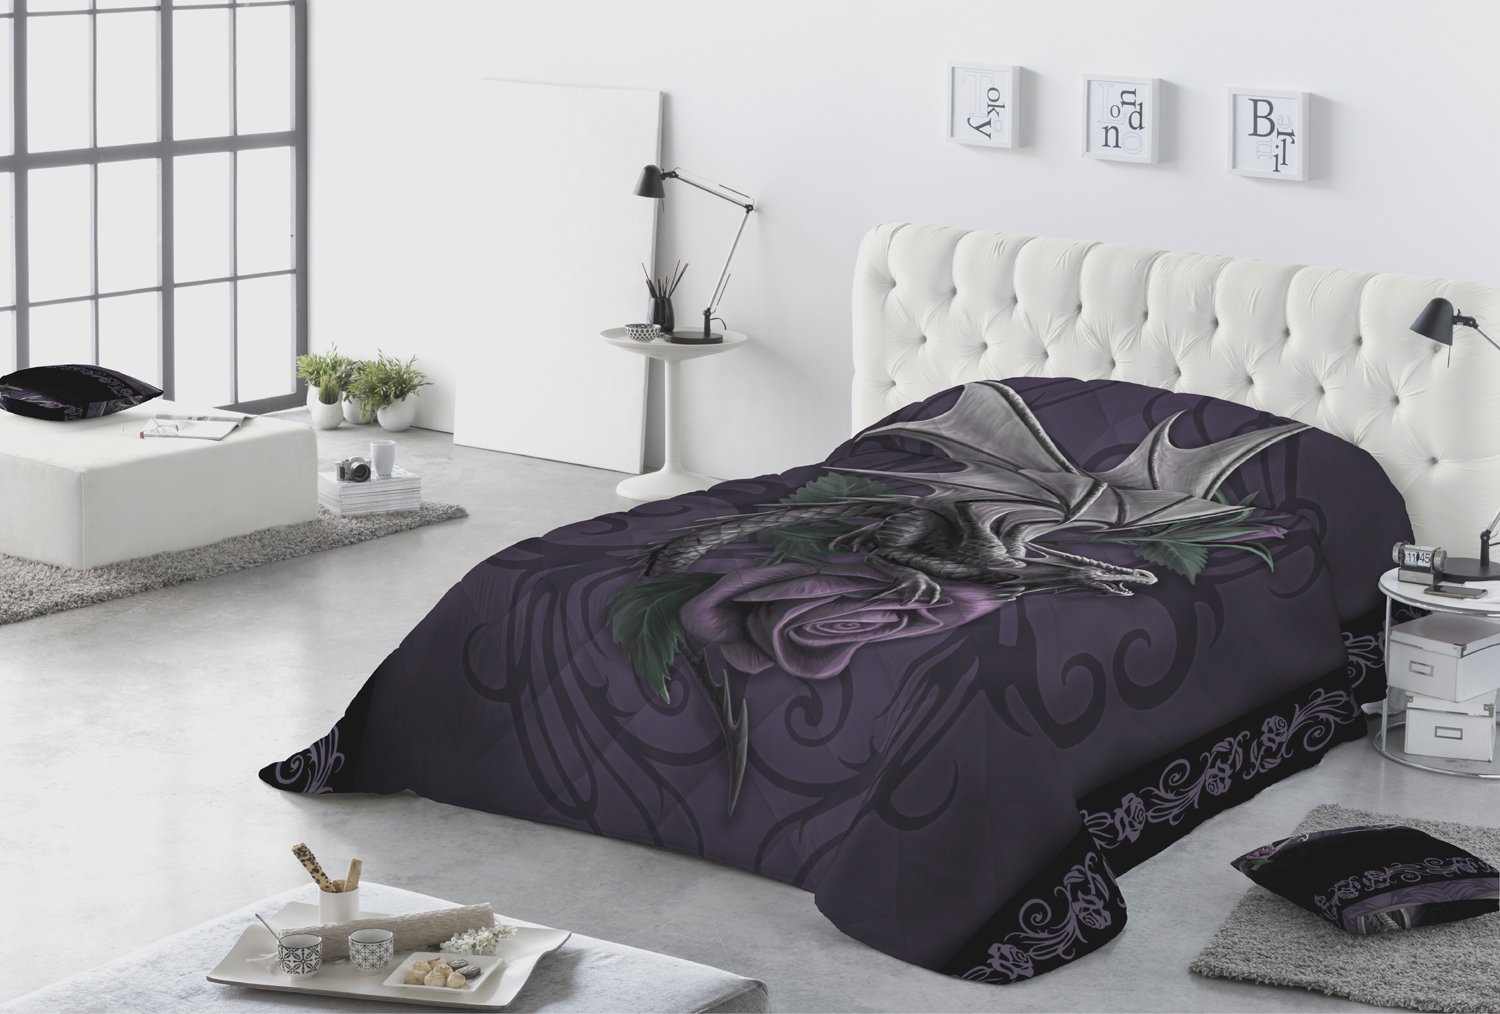 DRAGON BEAUTY - Kingsize Quilted Bedspread Pillowcase Set with artwork by Anne Stokes